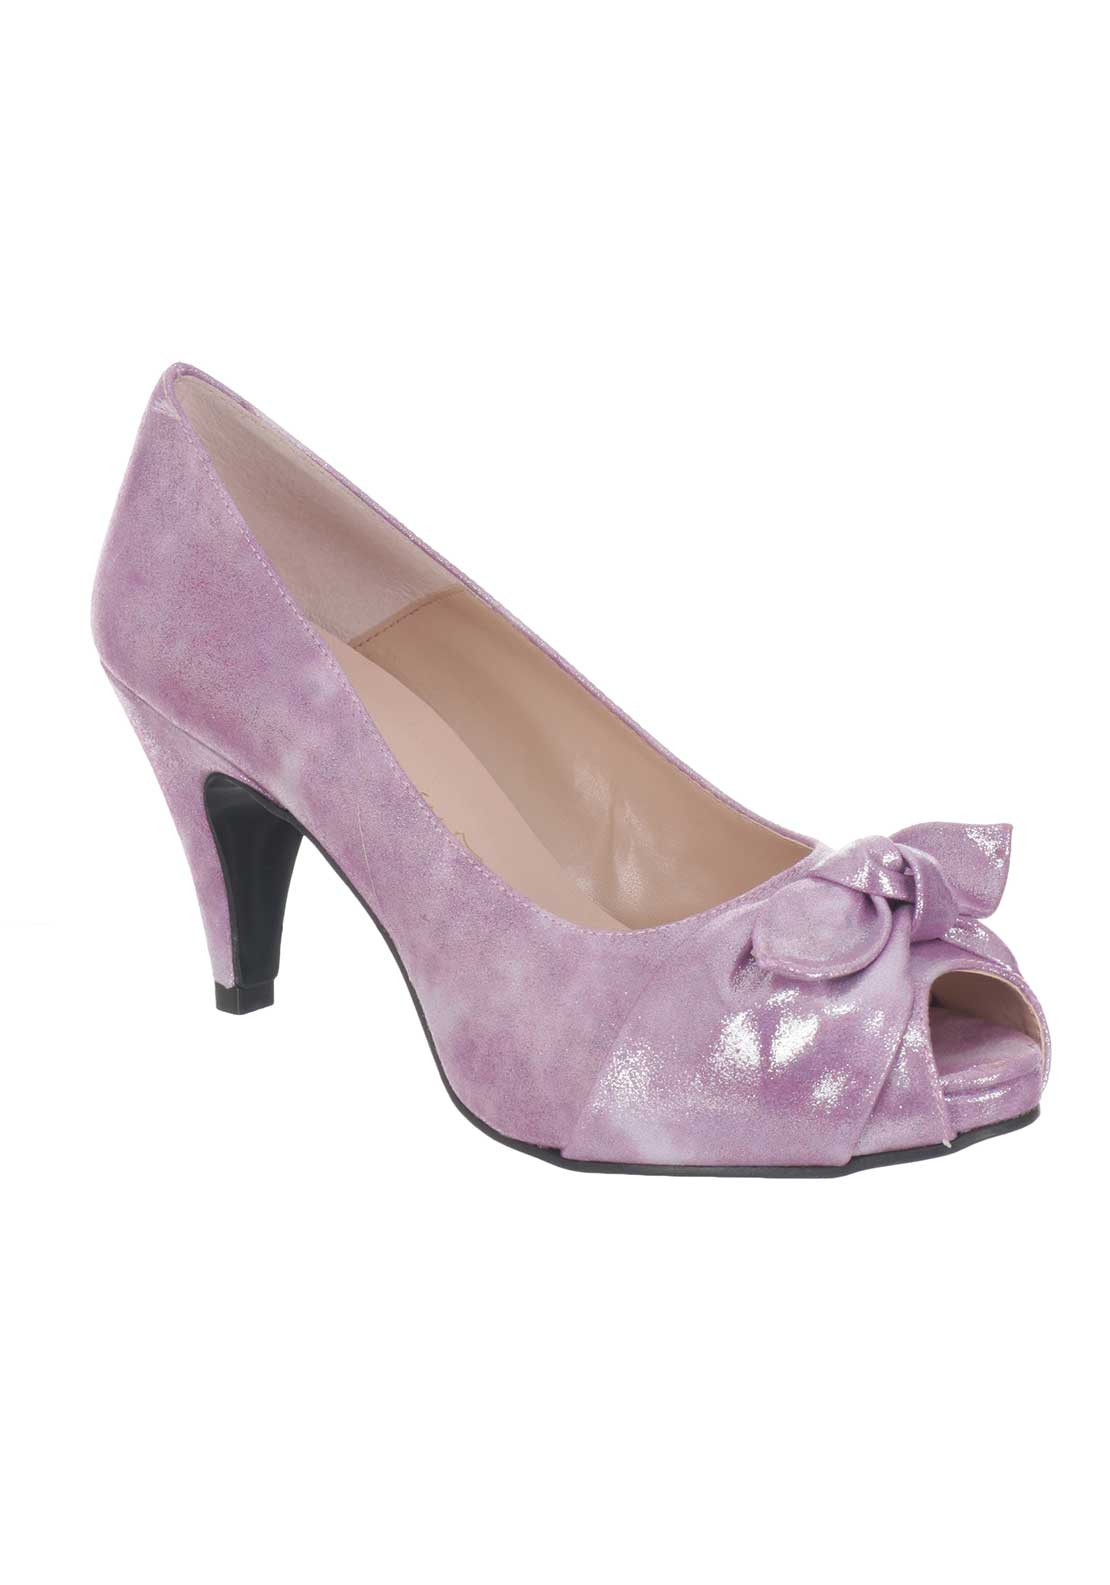 Ana Roman Shimmer Peep Toe Heeled Shoes, Purple